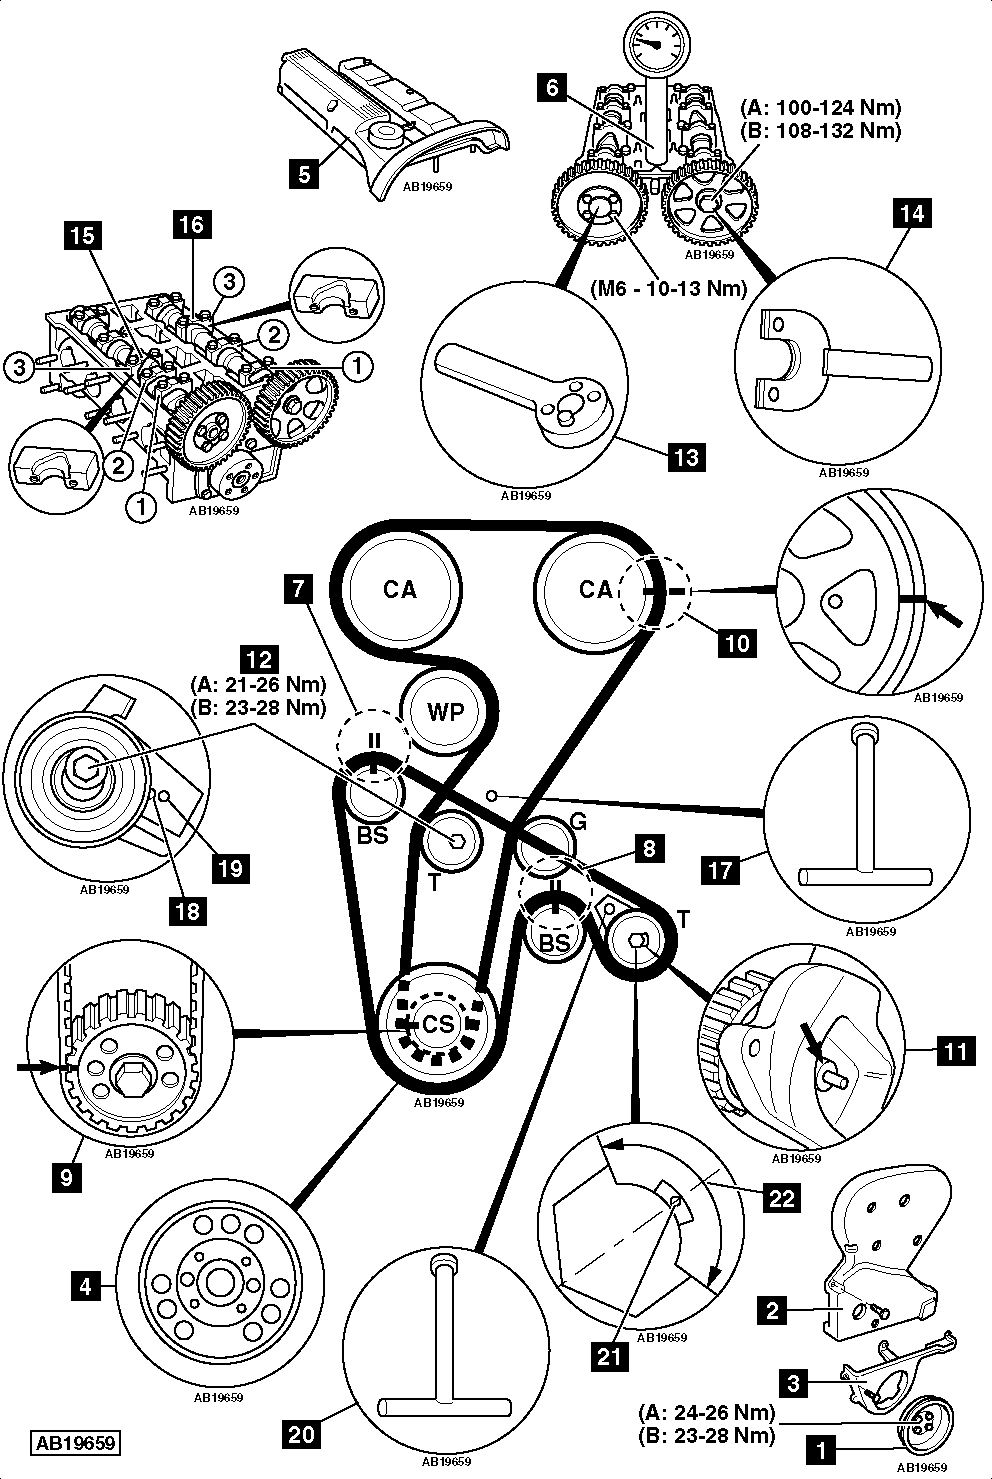 2004 Ford F 150 5 4 Engine Problems also 2005 Ford Freestar Front Suspension Diagram furthermore 2003 Kenworth Fuse Panel Diagram further Jaguar Xj6 Ignition Coil Diagram besides Vw Timing Chain Diagram For Belt. on mazda 6 timing belt replacement